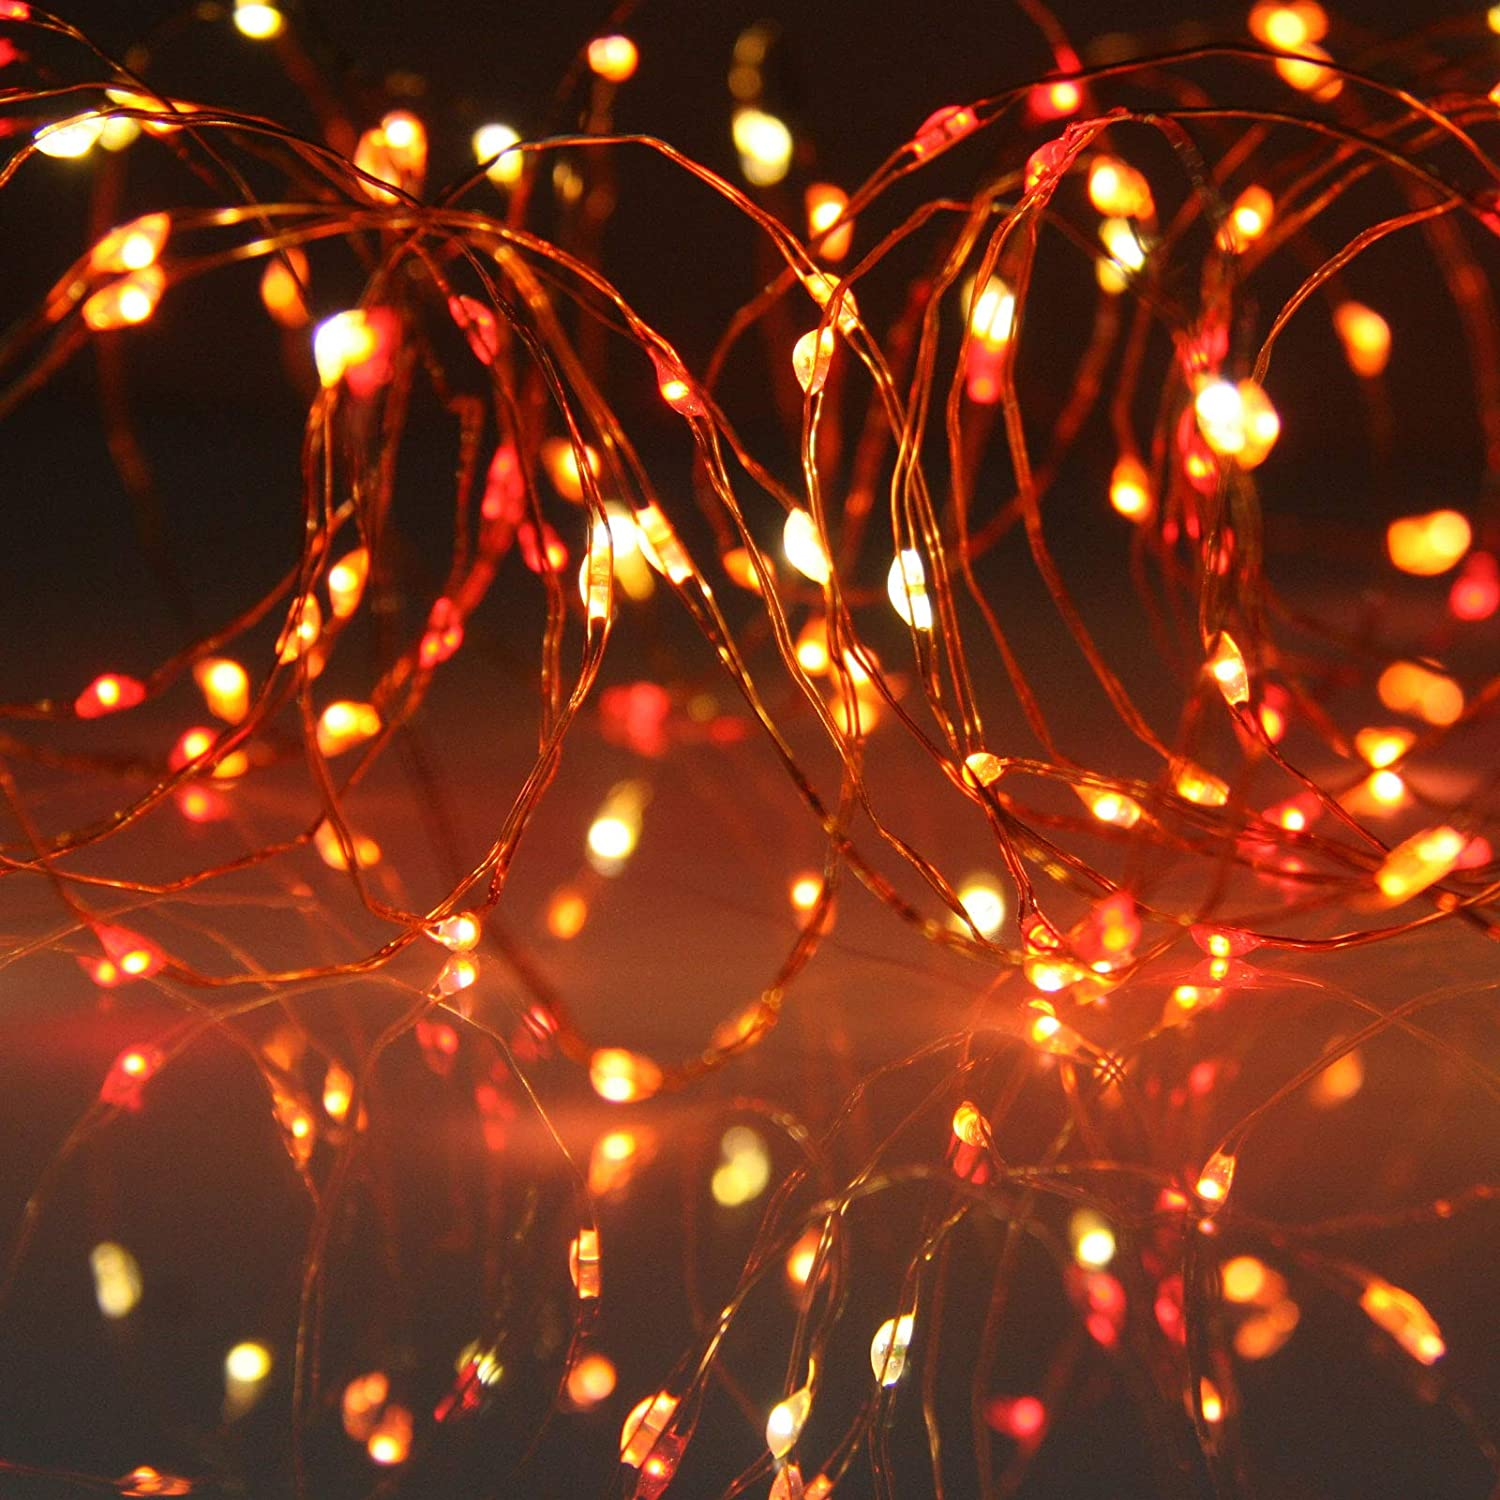 Micro Led Fairy String Lights A Unique Combination Of Red Orange And Yellow Leds On Thin Copper Wire With Multifunction Controller By Qbis Sunset